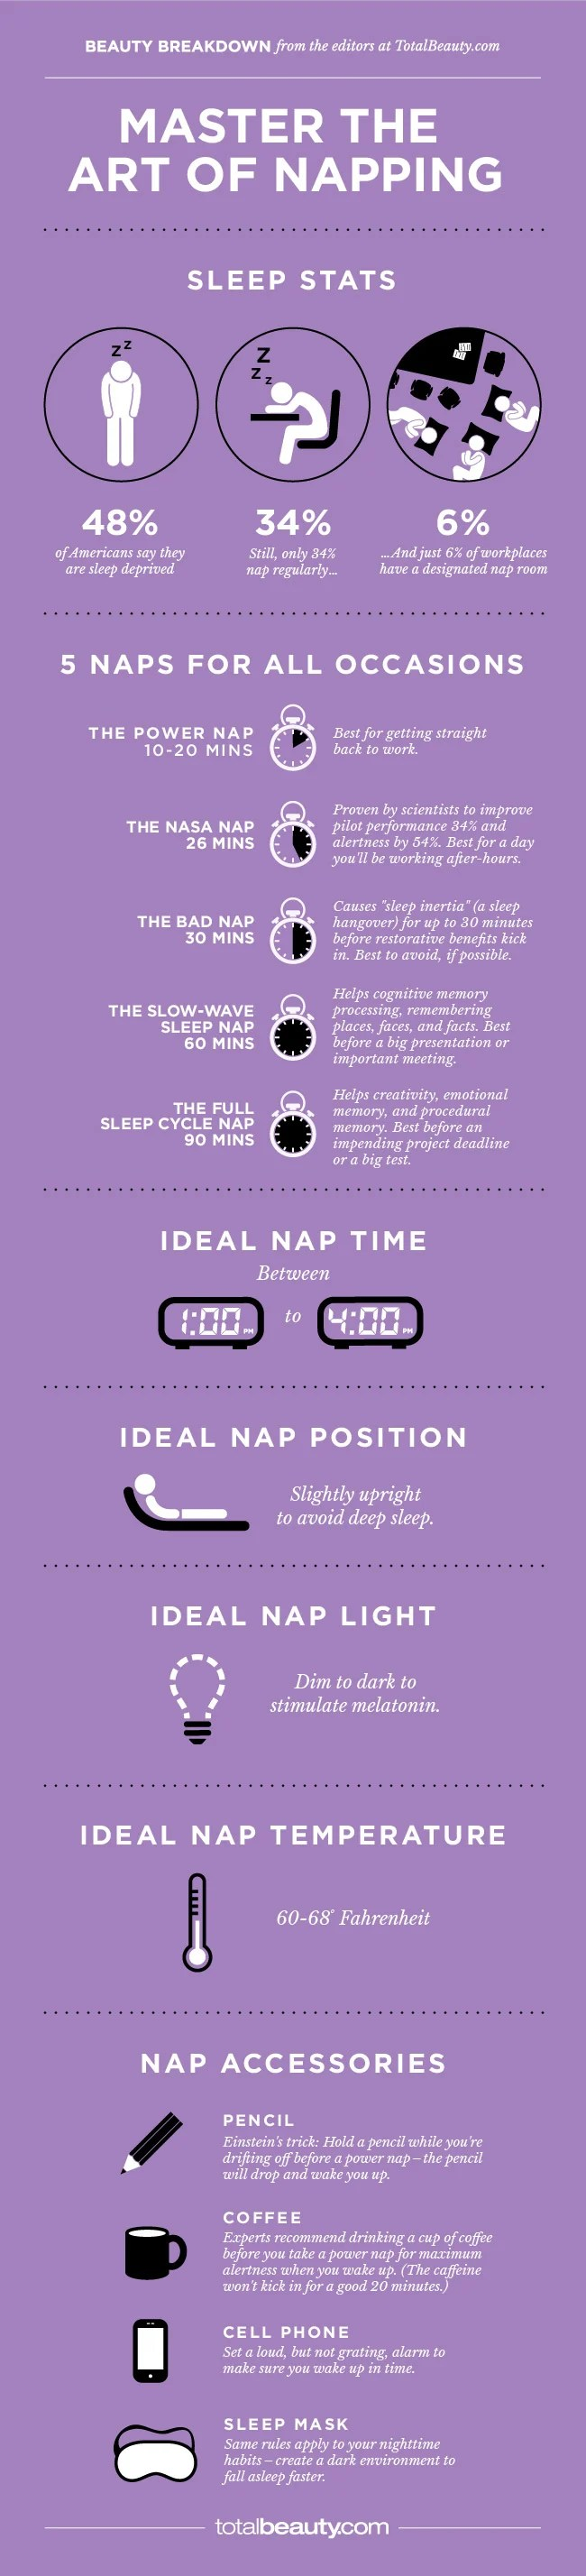 The Art of Napping: tips & stats [Infographic]   ecogreenlove